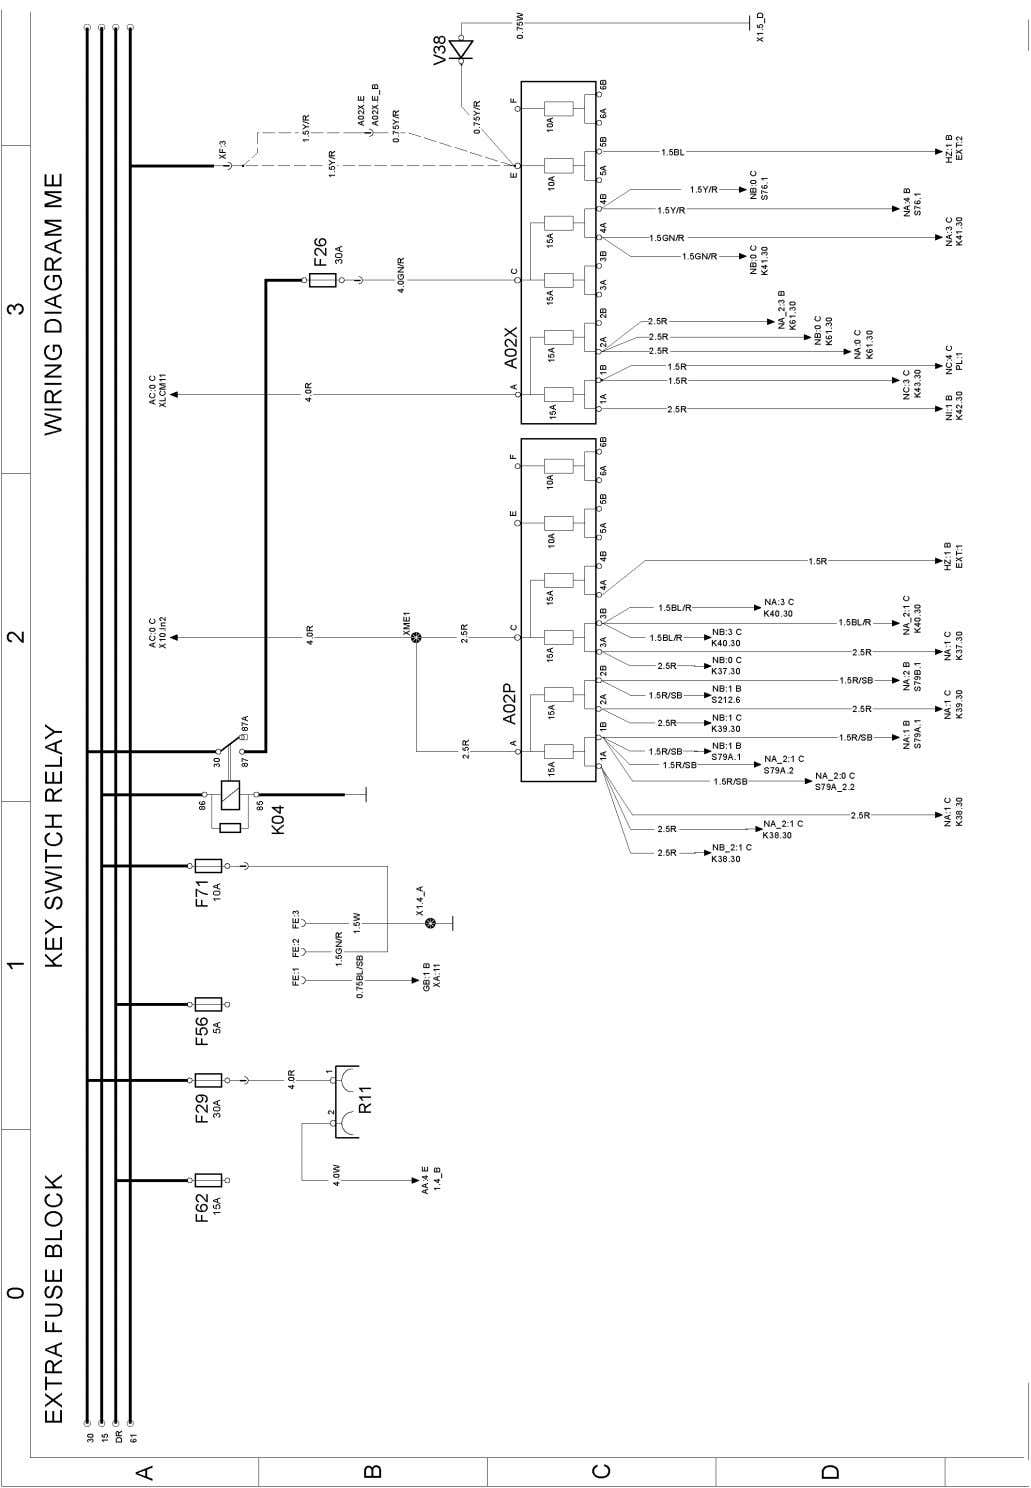 T3064938 Wiring diagram Page 107 (298)